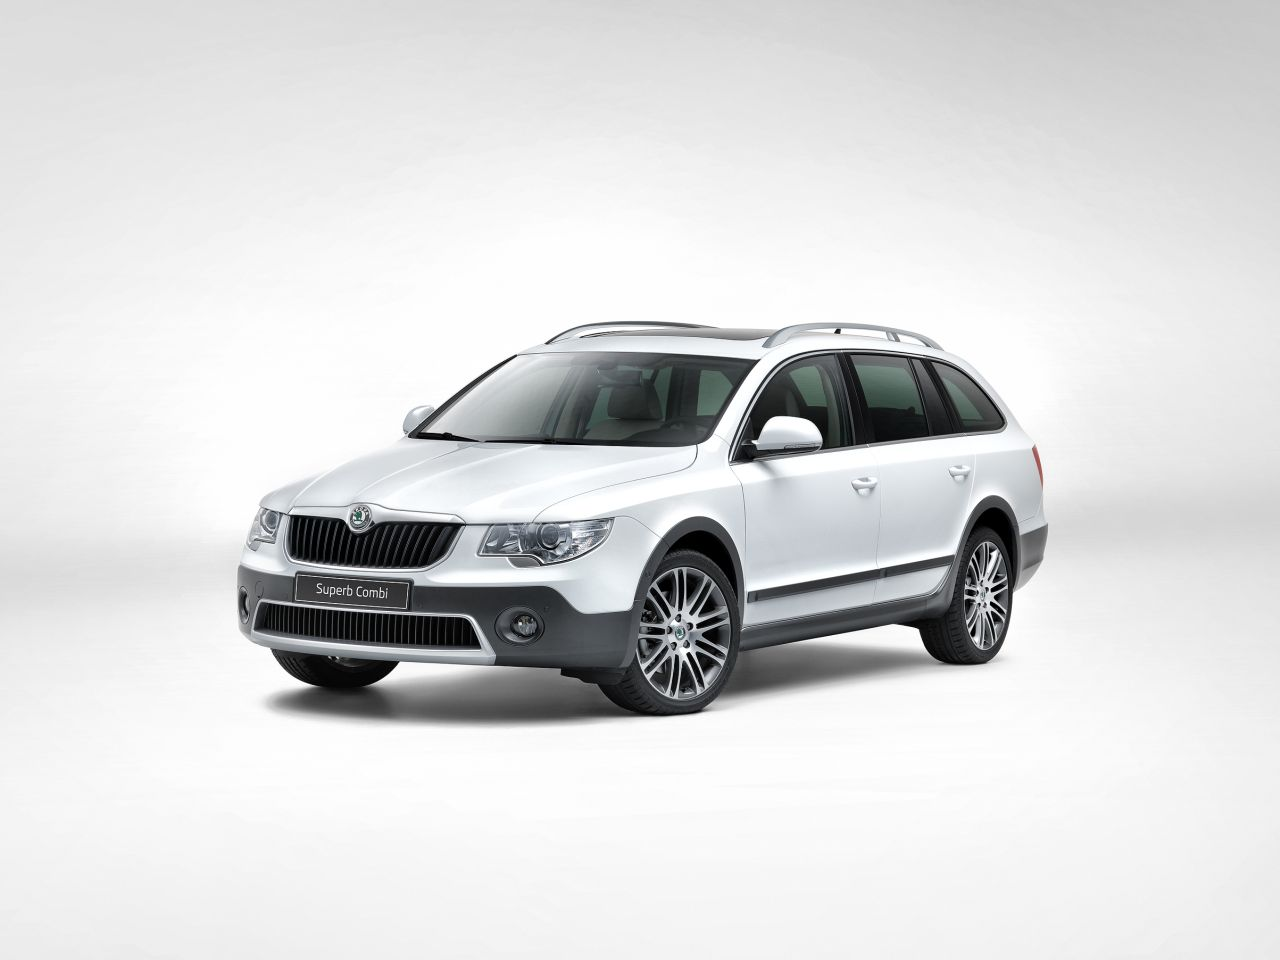 Skoda-Superb-Combi-Outdoor-01.jpg